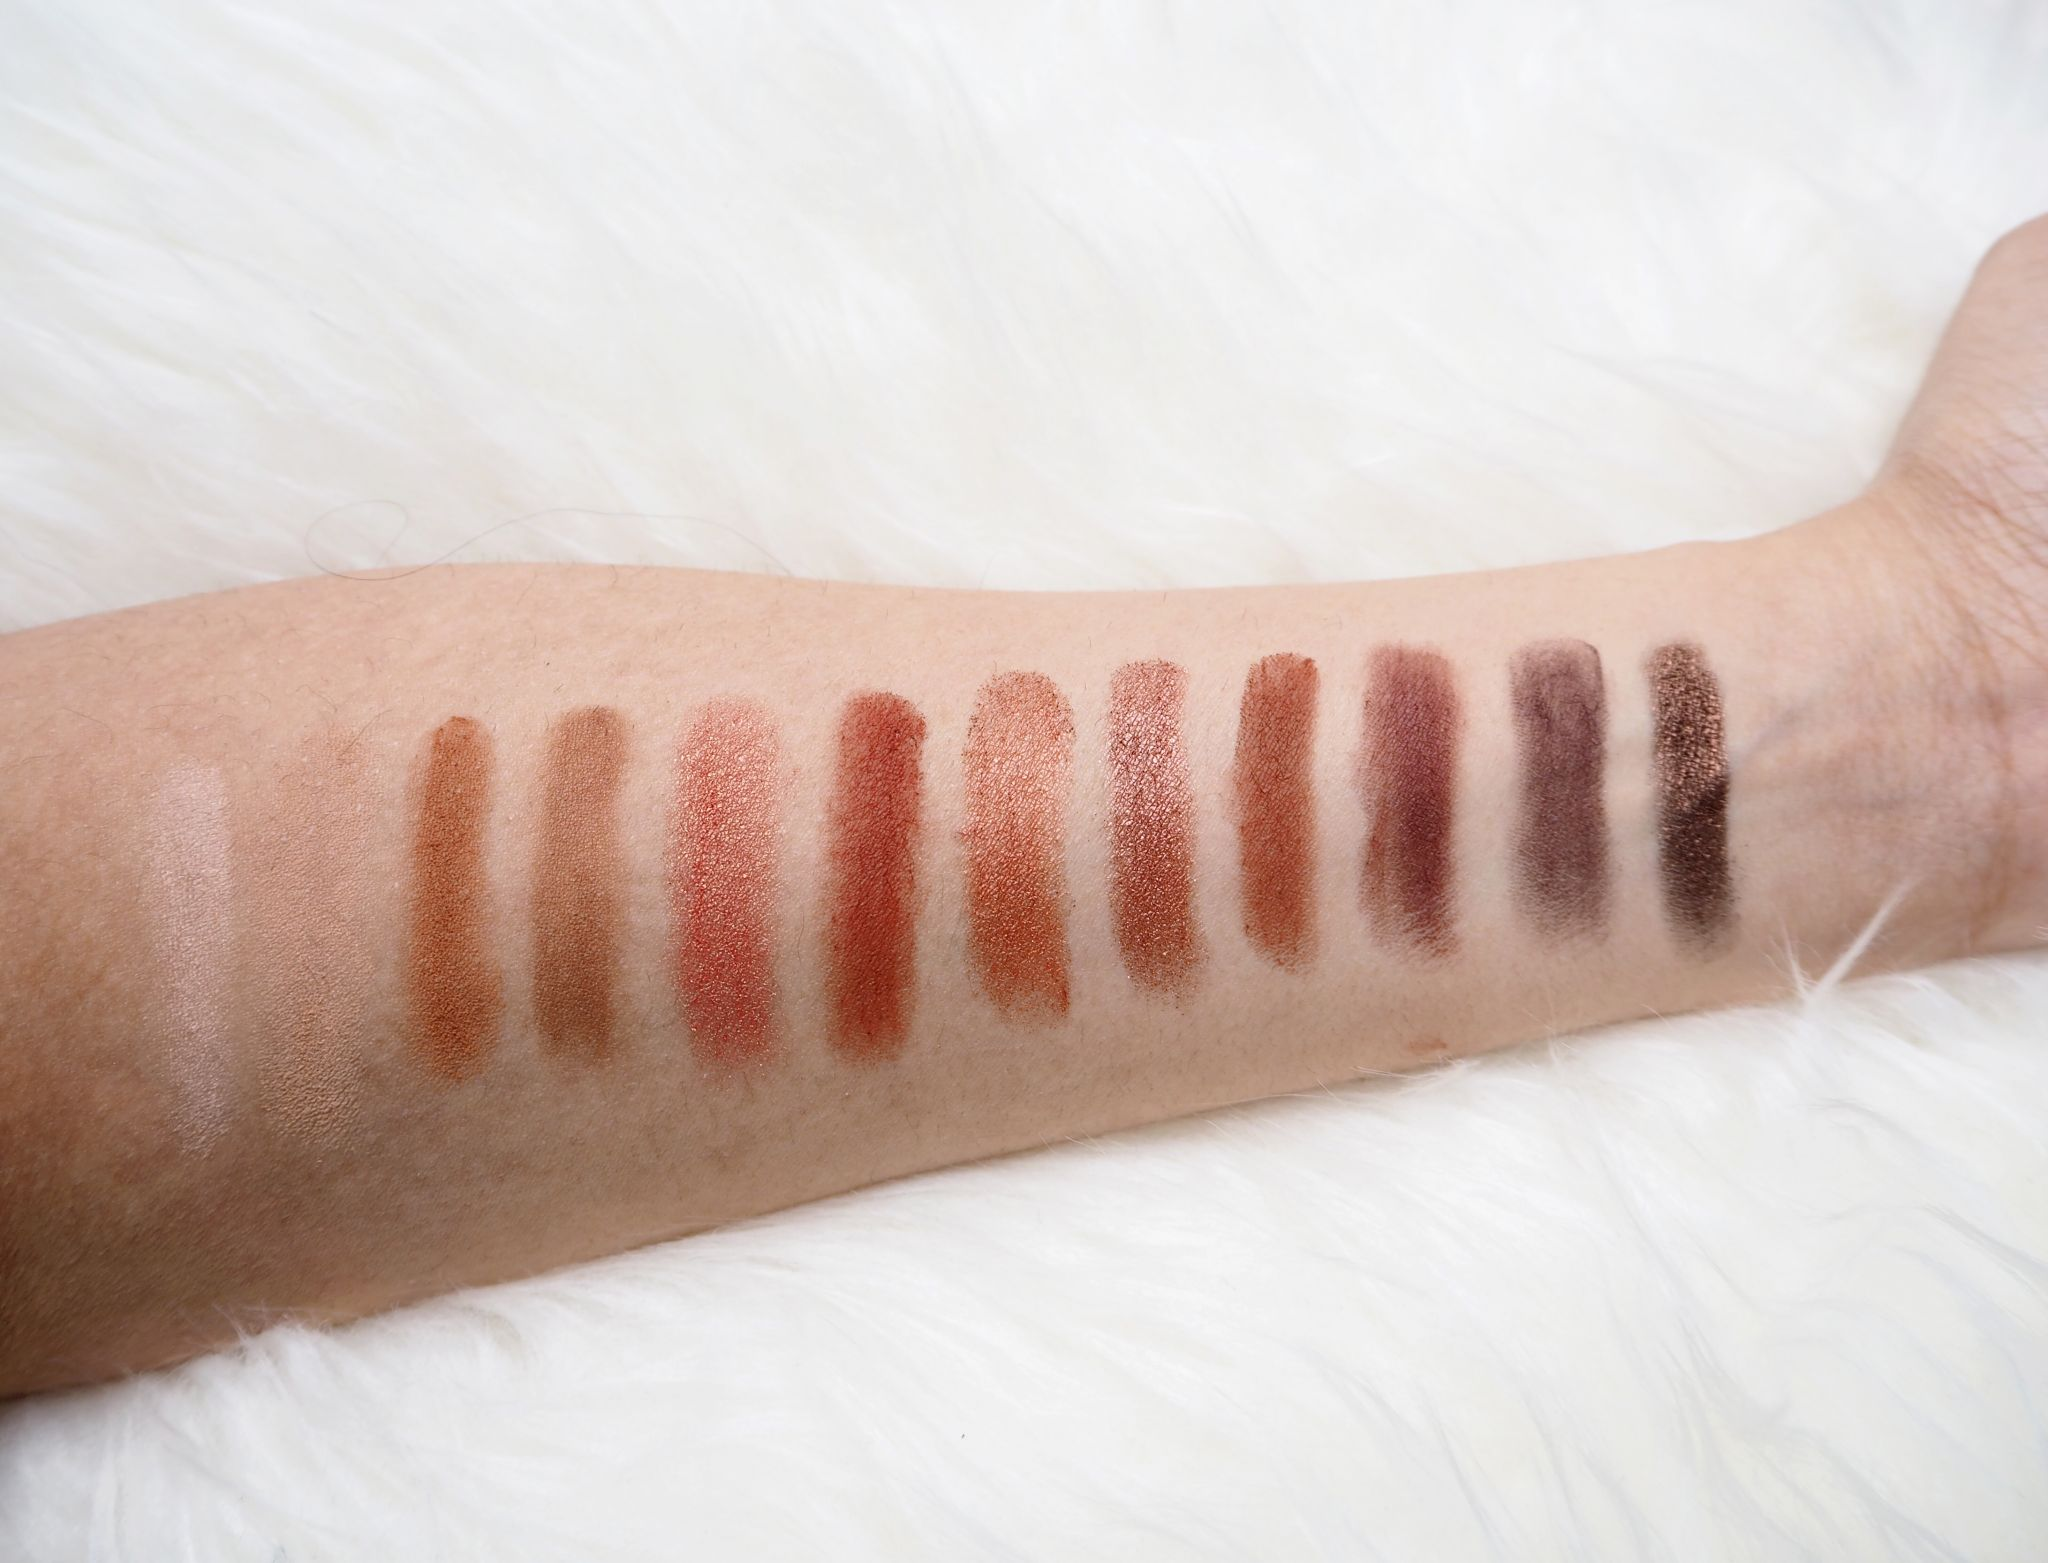 Urban Decay Naked Heat colours